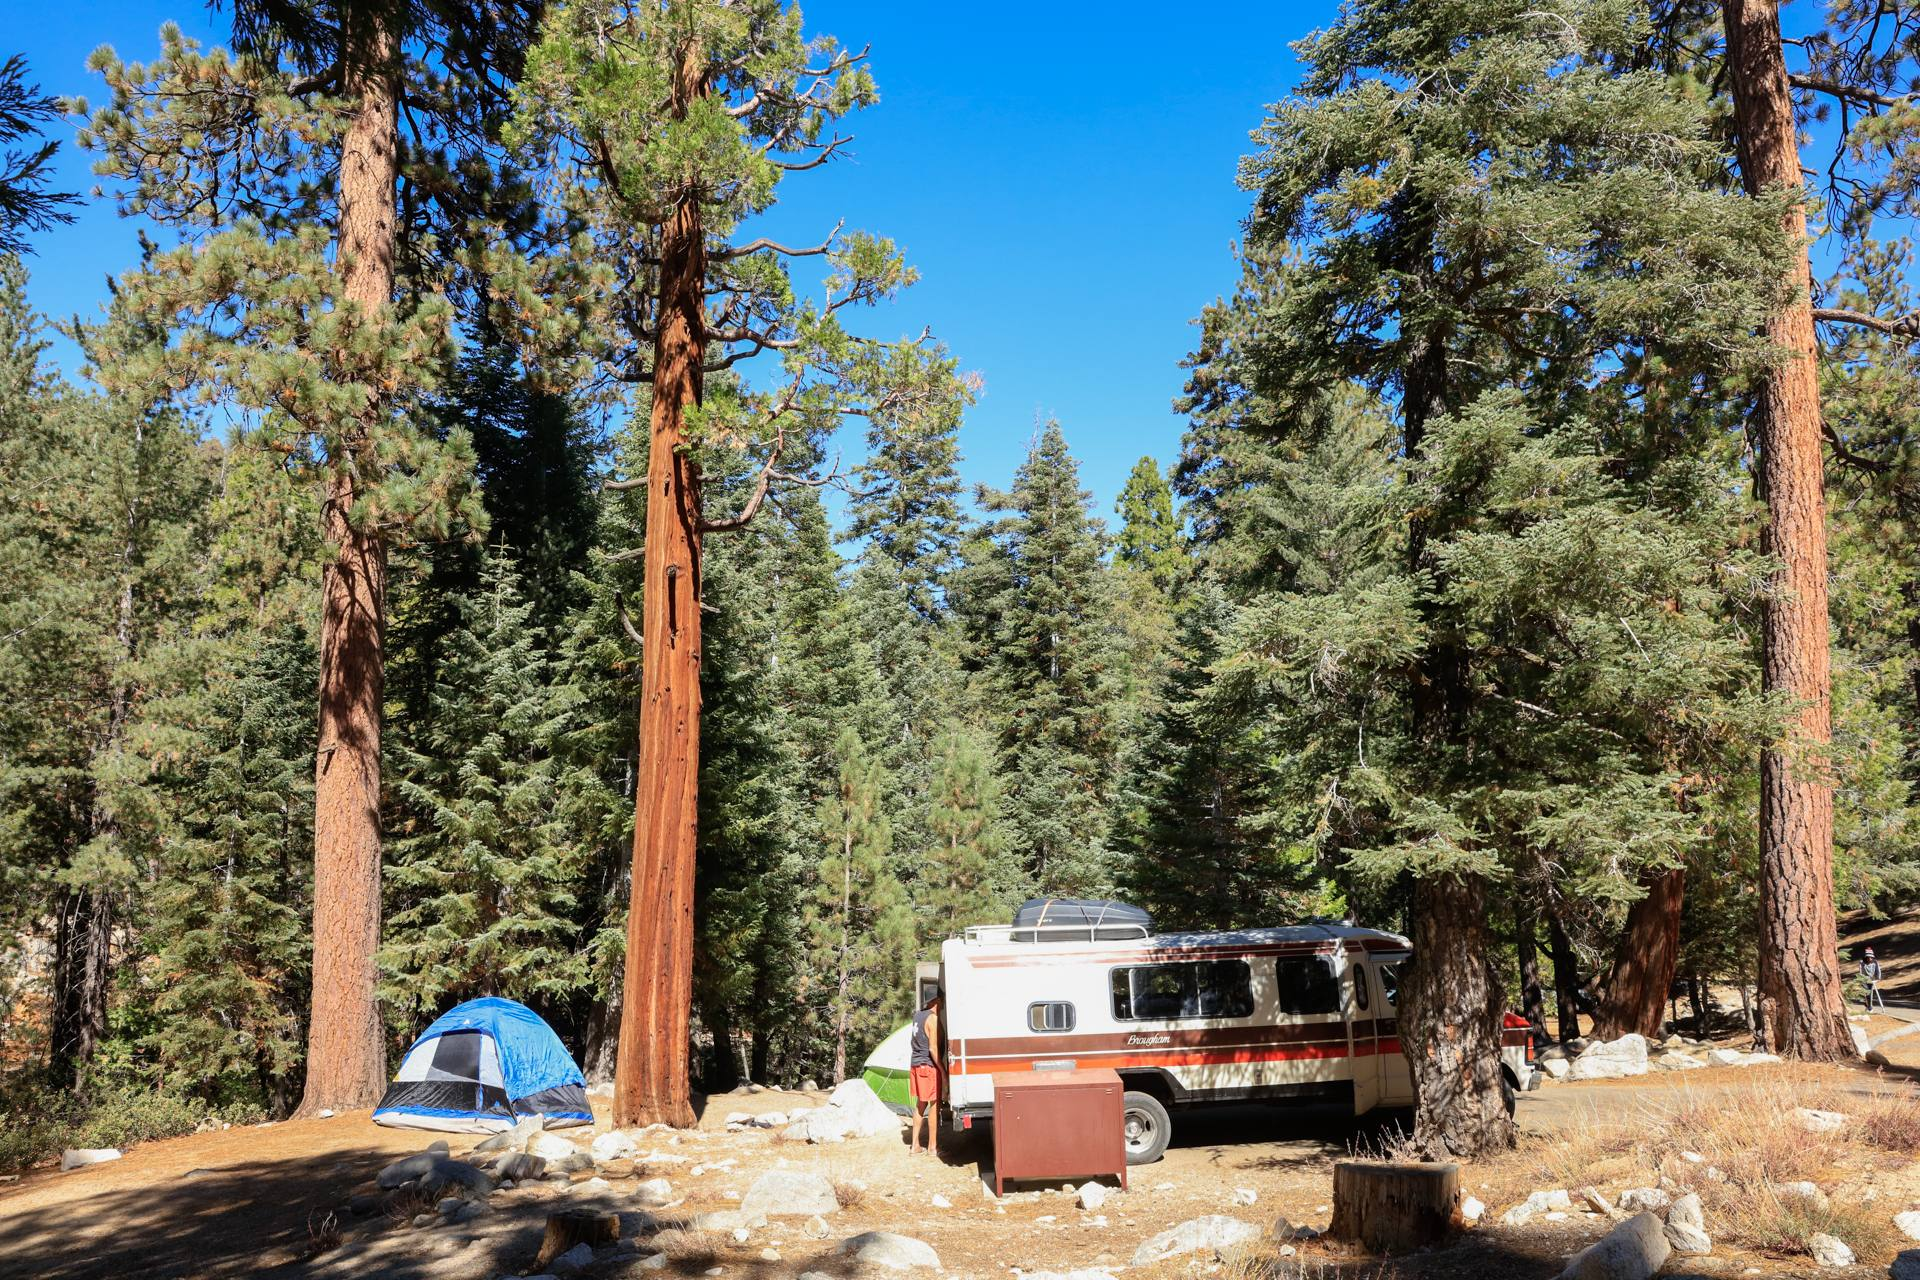 Buckhorn Campground in the Angeles National Forest